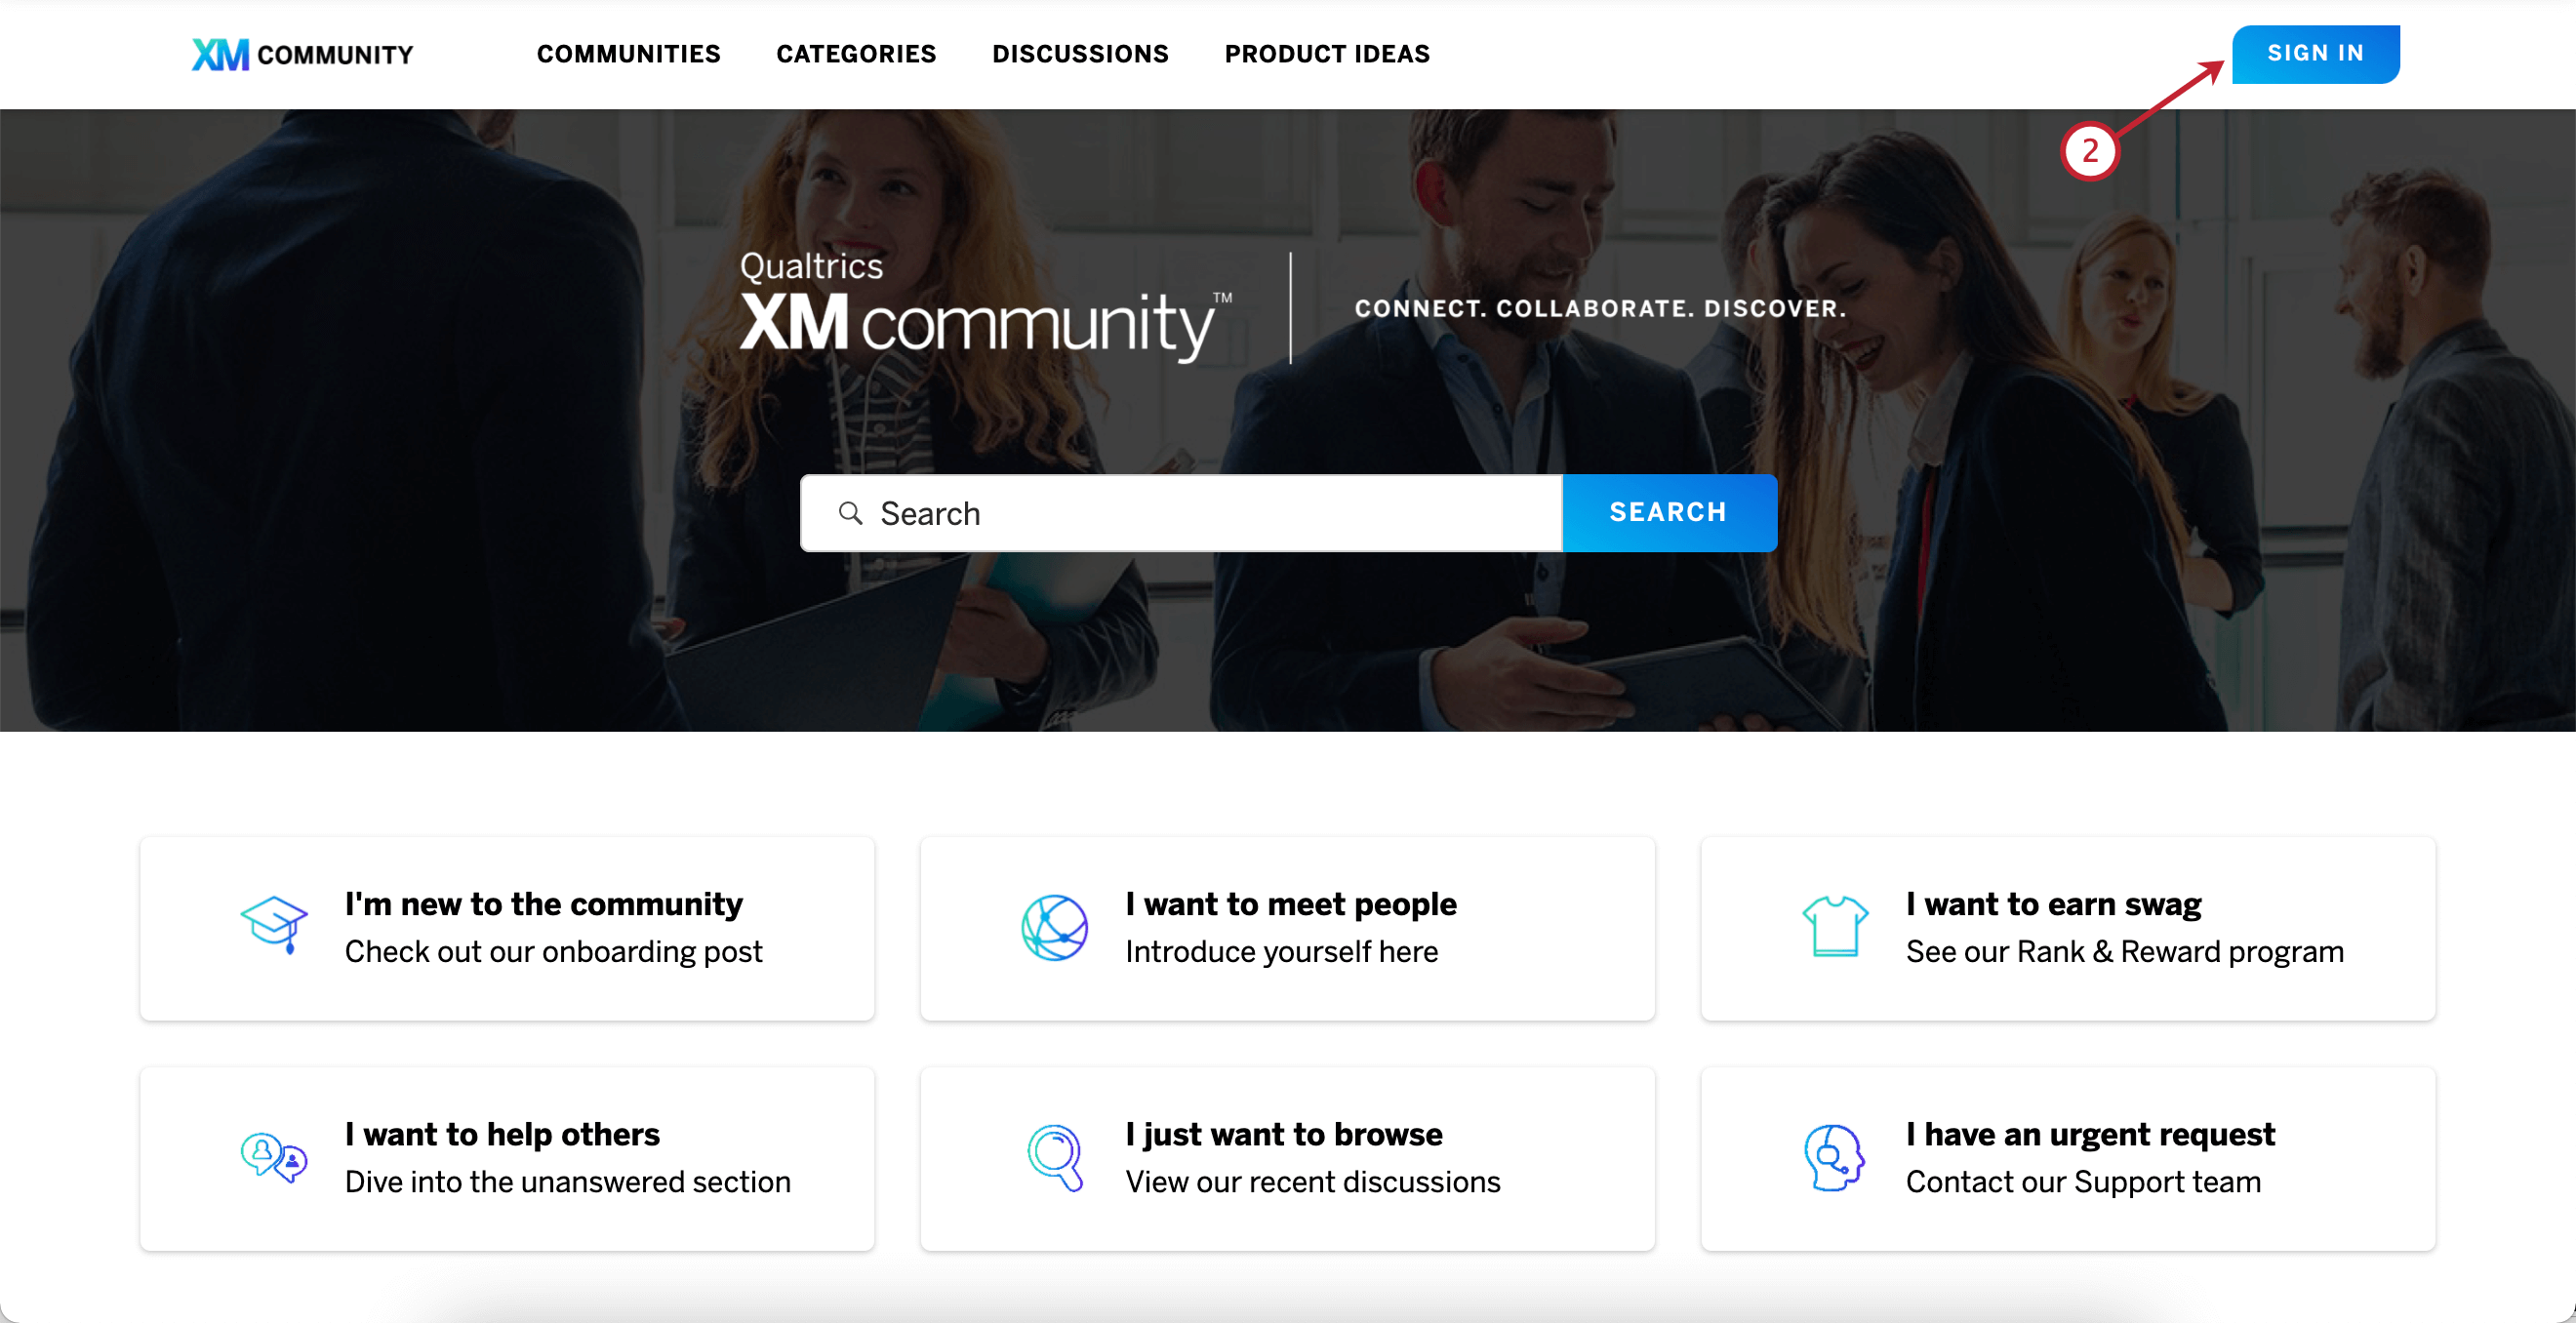 Sign in to Community